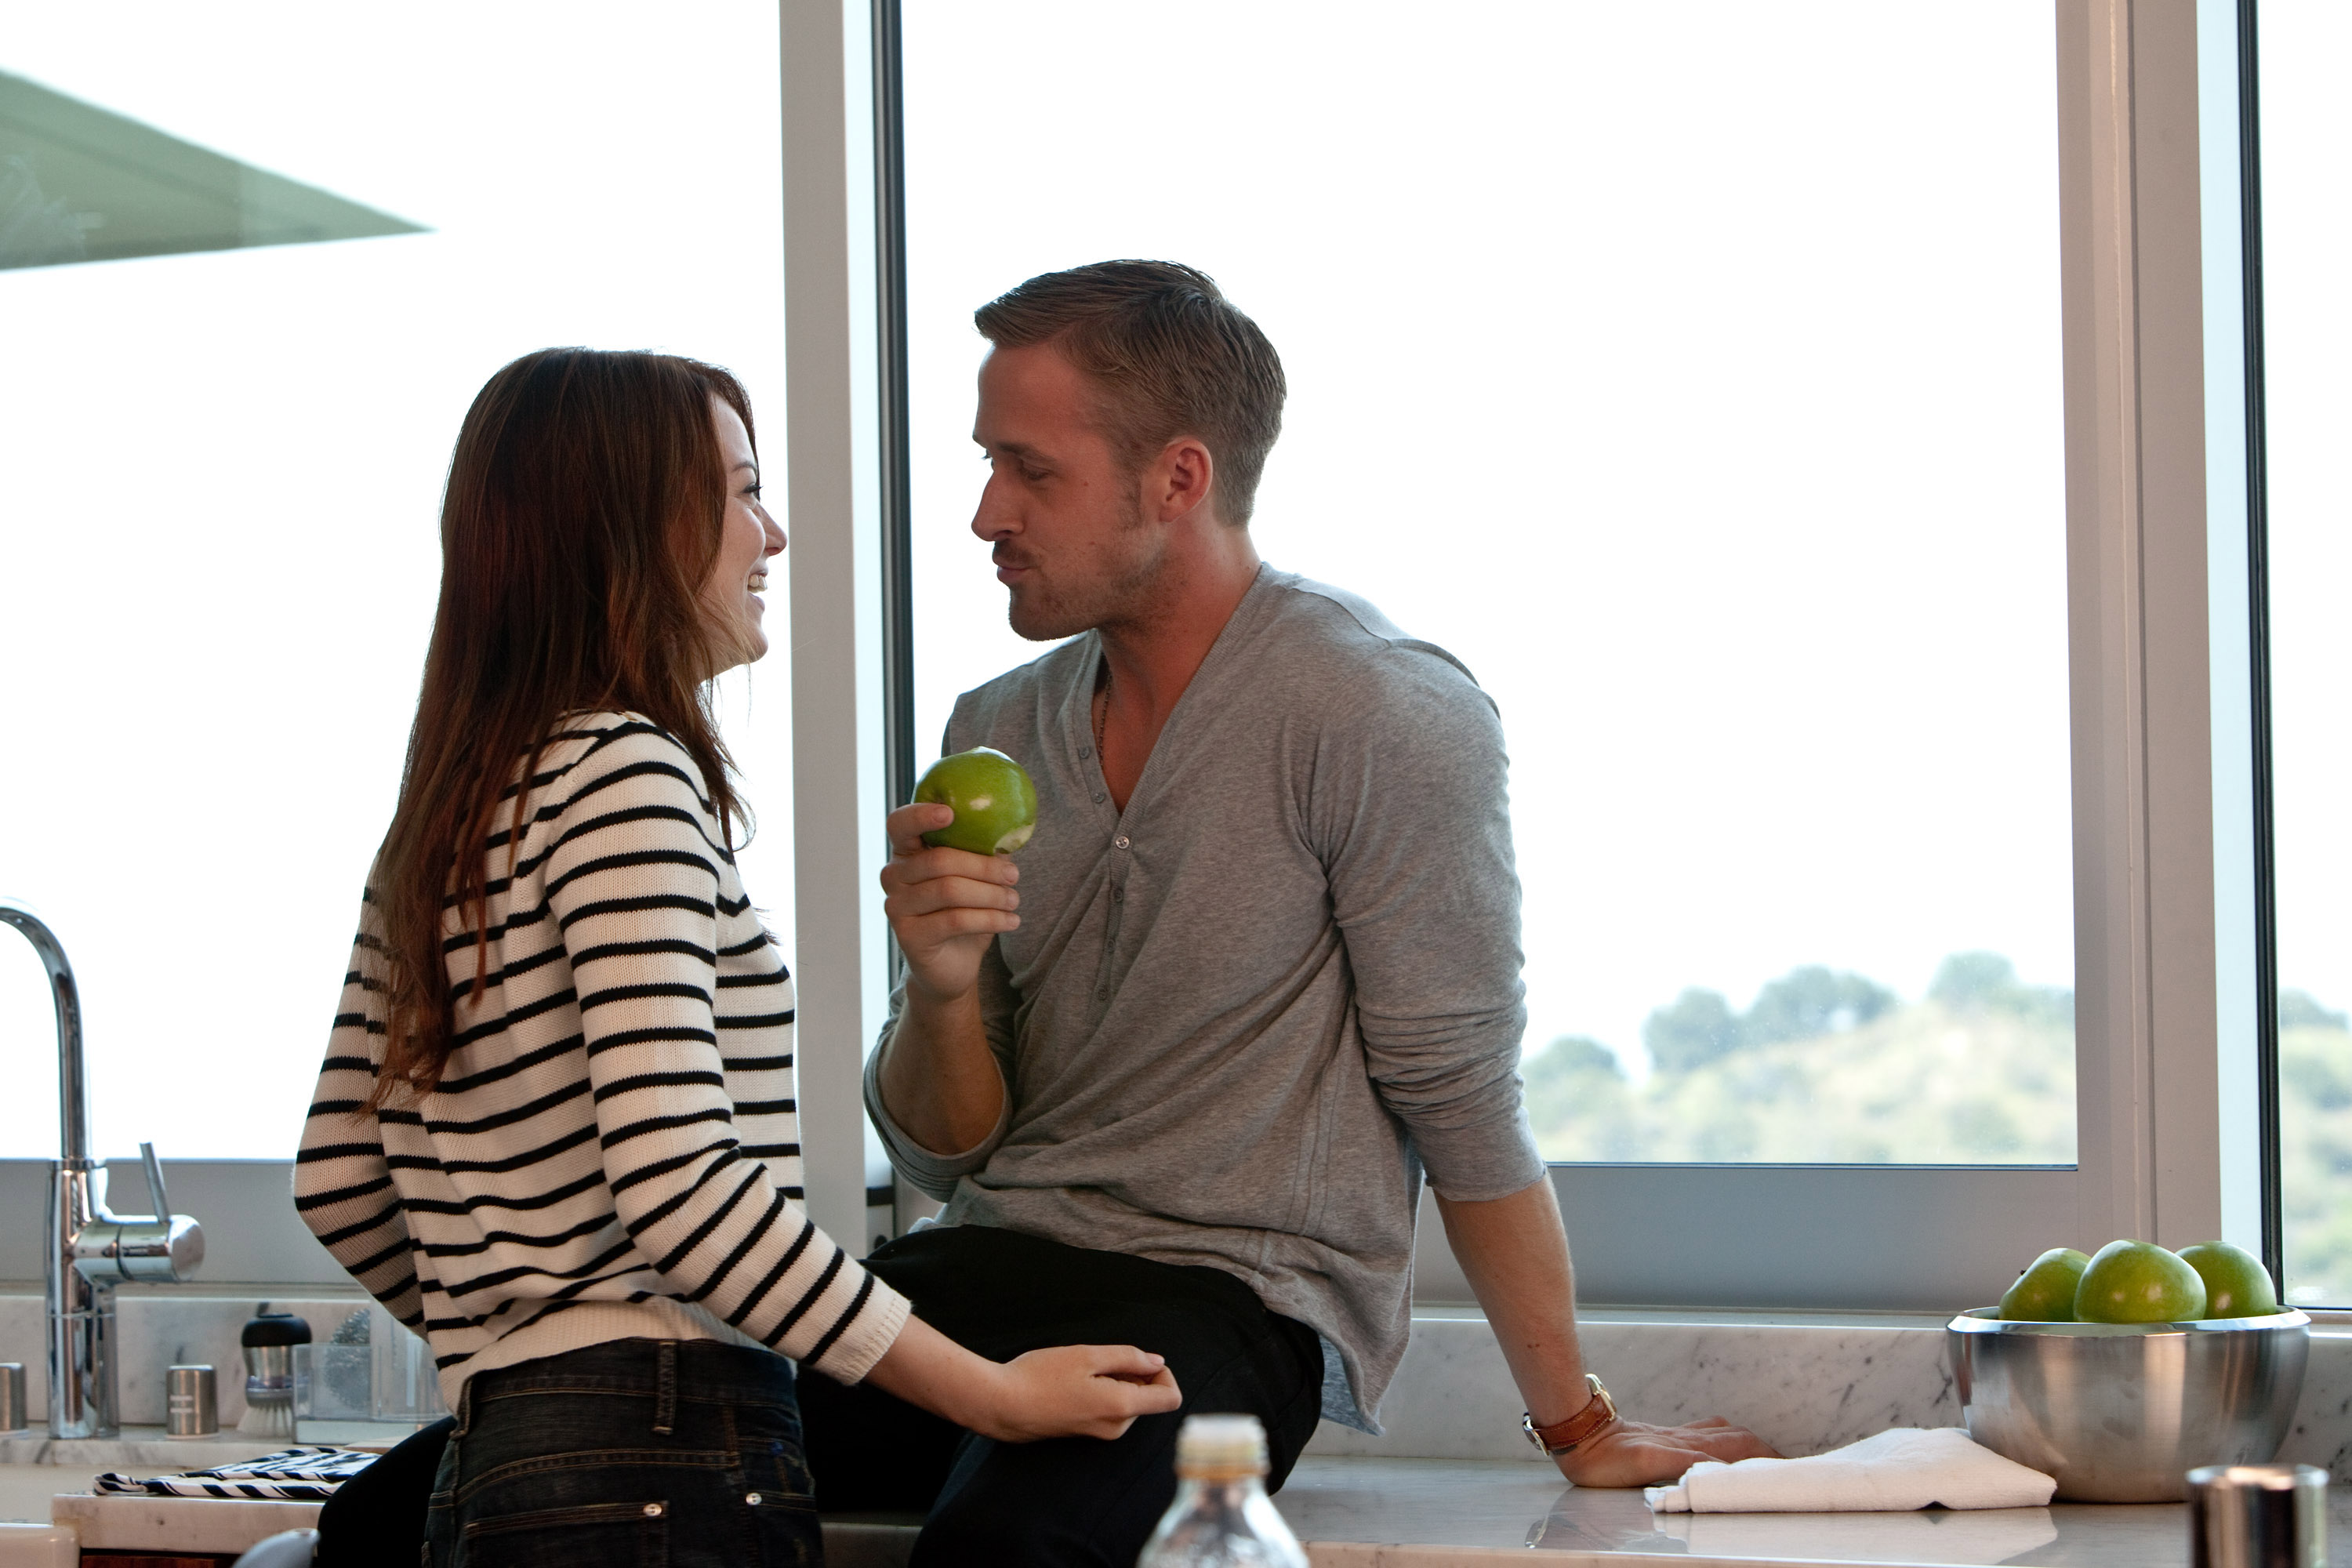 """(L-r) EMMA STONE as Hannah and RYAN GOSLING as Jacob in Warner Bros. Pictures' comedy """"CRAZY, STUPID, LOVE."""" a Warner Bros. Pictures release. Photo by Ben Glass"""